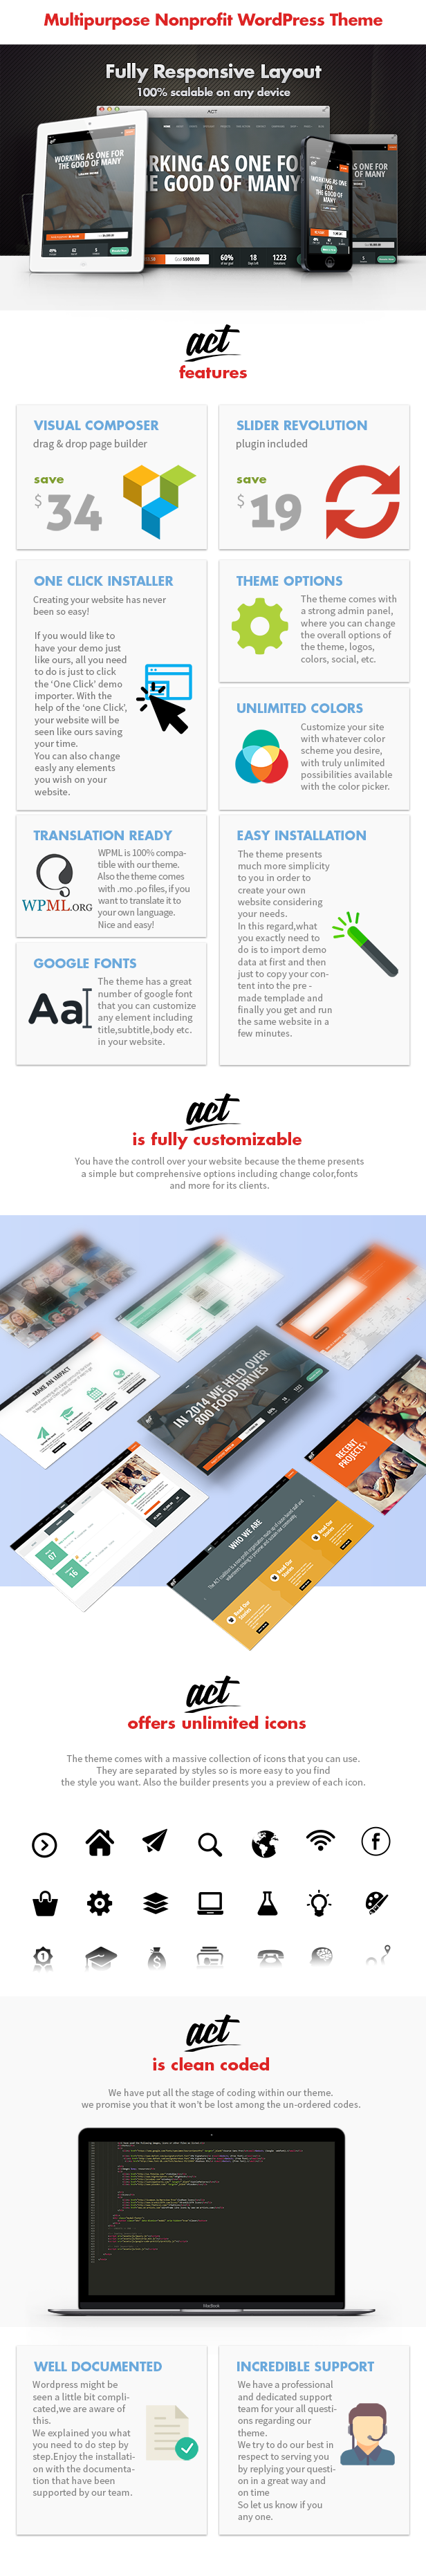 Act - Multipurpose Nonprofit Theme